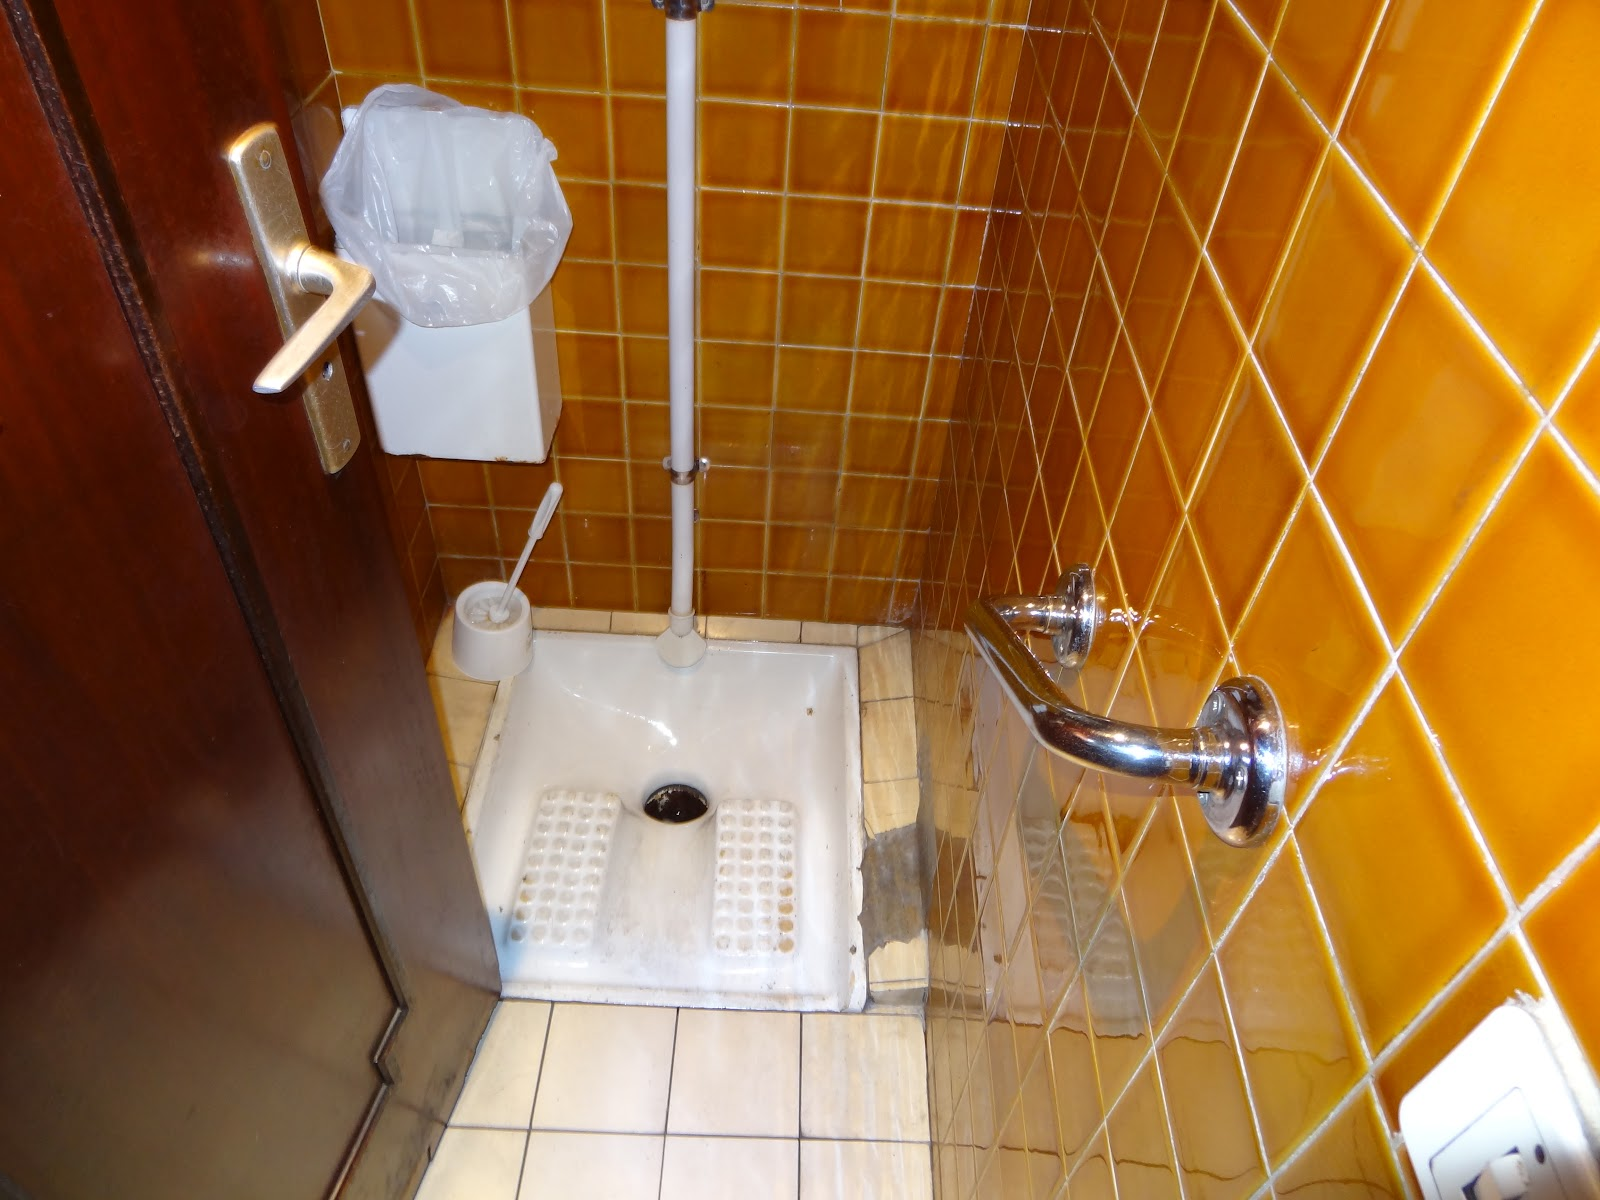 Dave S Activemsers Blog Les Toilettes The French Folly